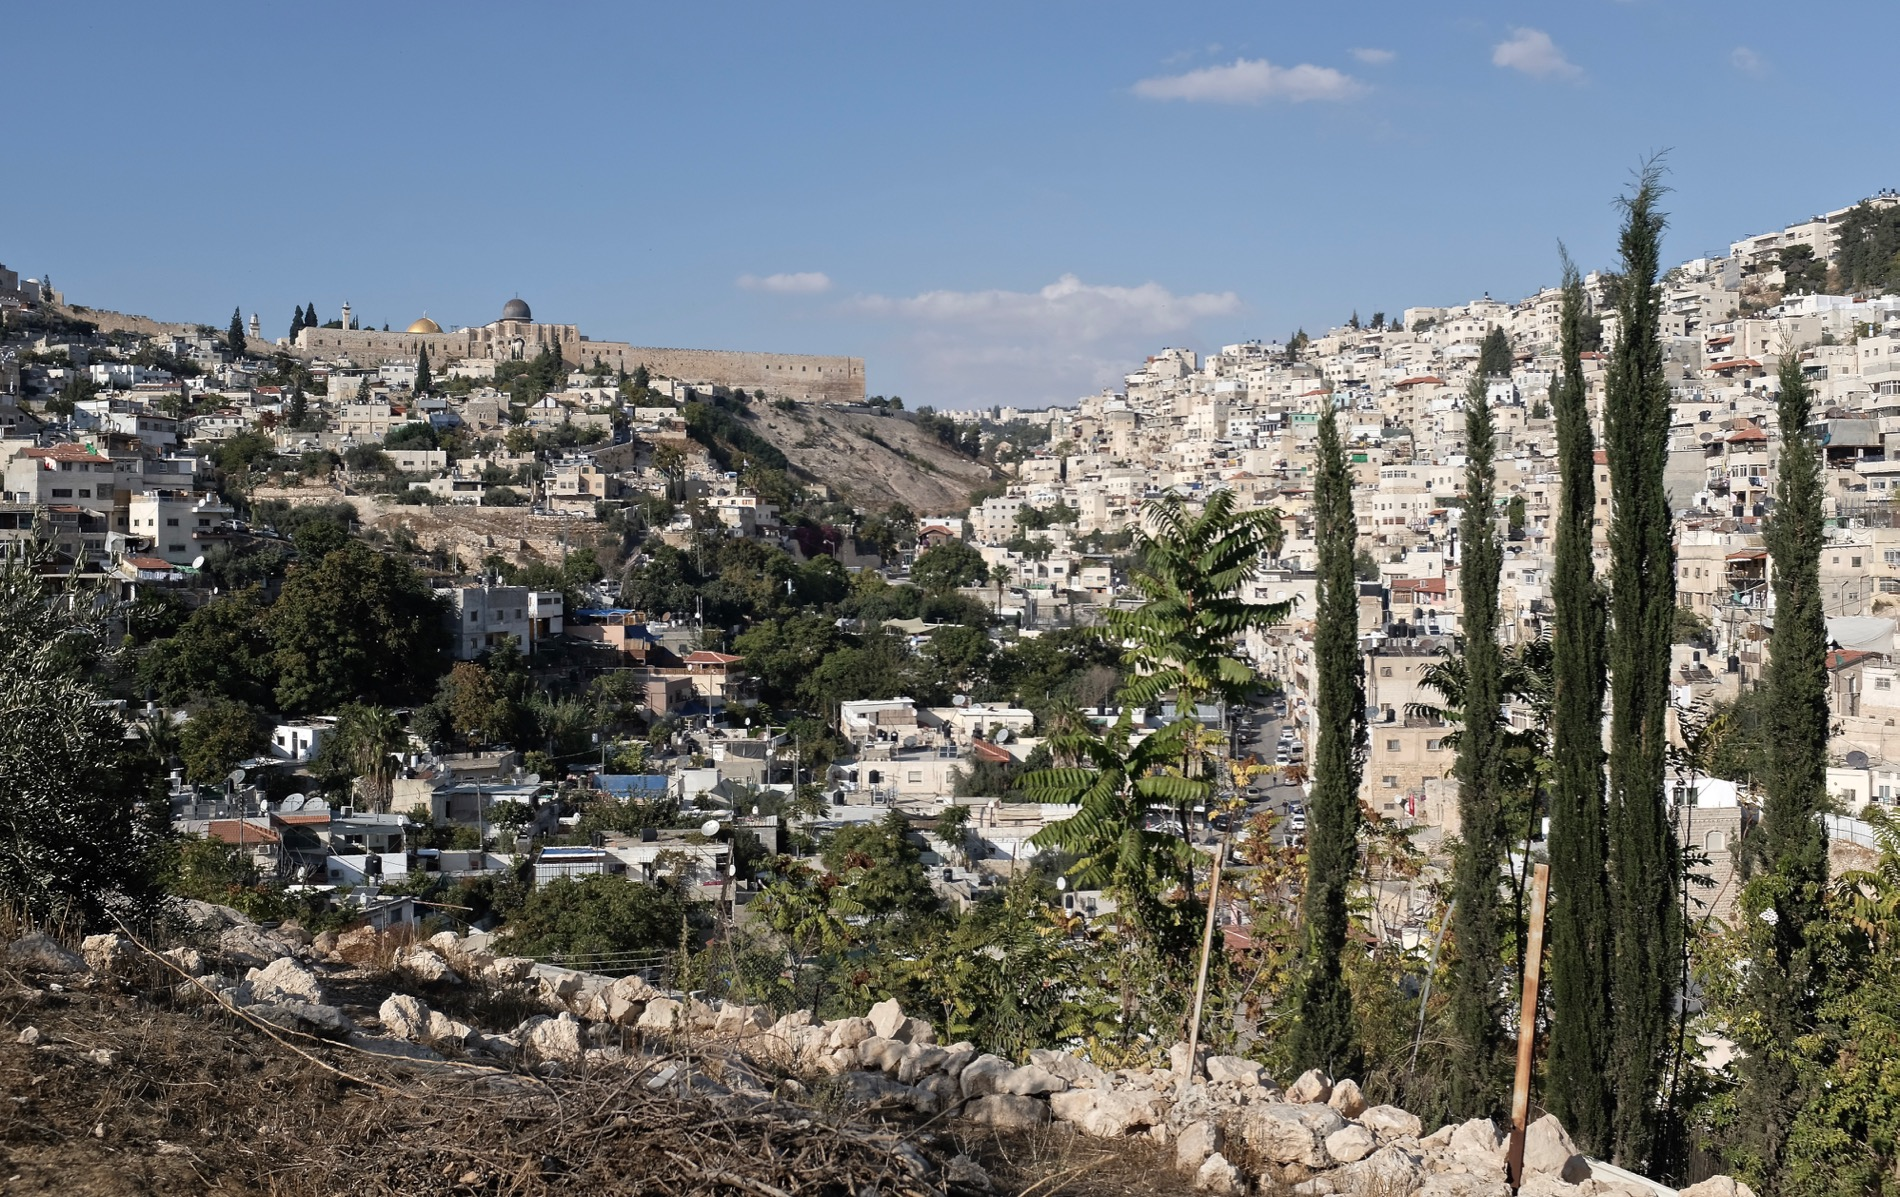 Silwan - 'City of David'